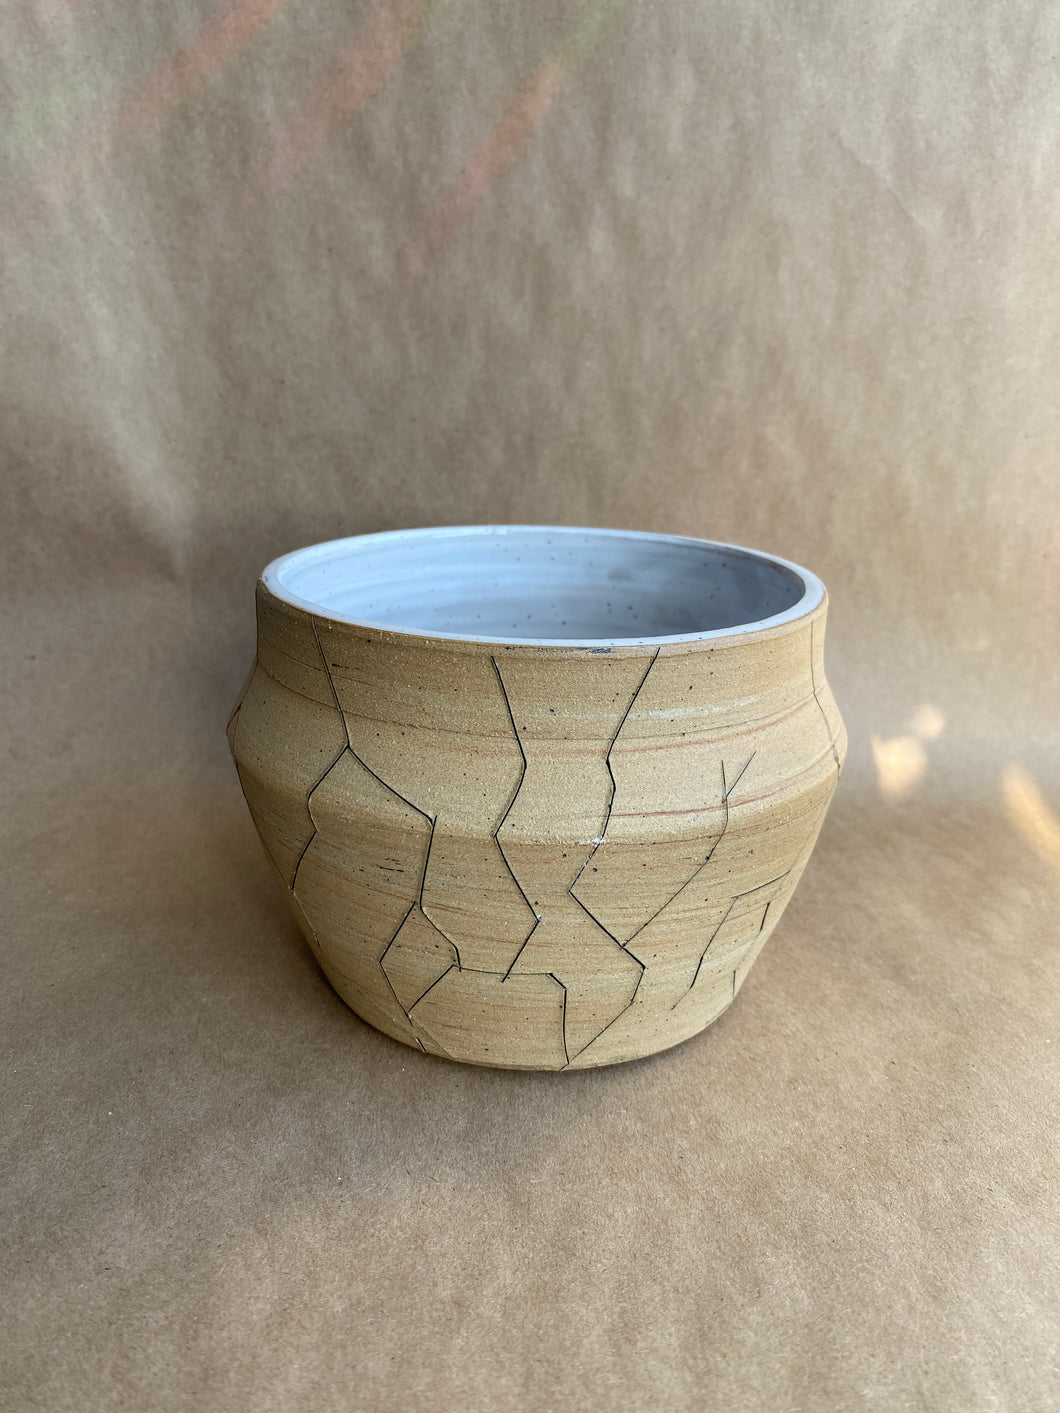 SECONDS SALE - Cracked marbled planter/vase